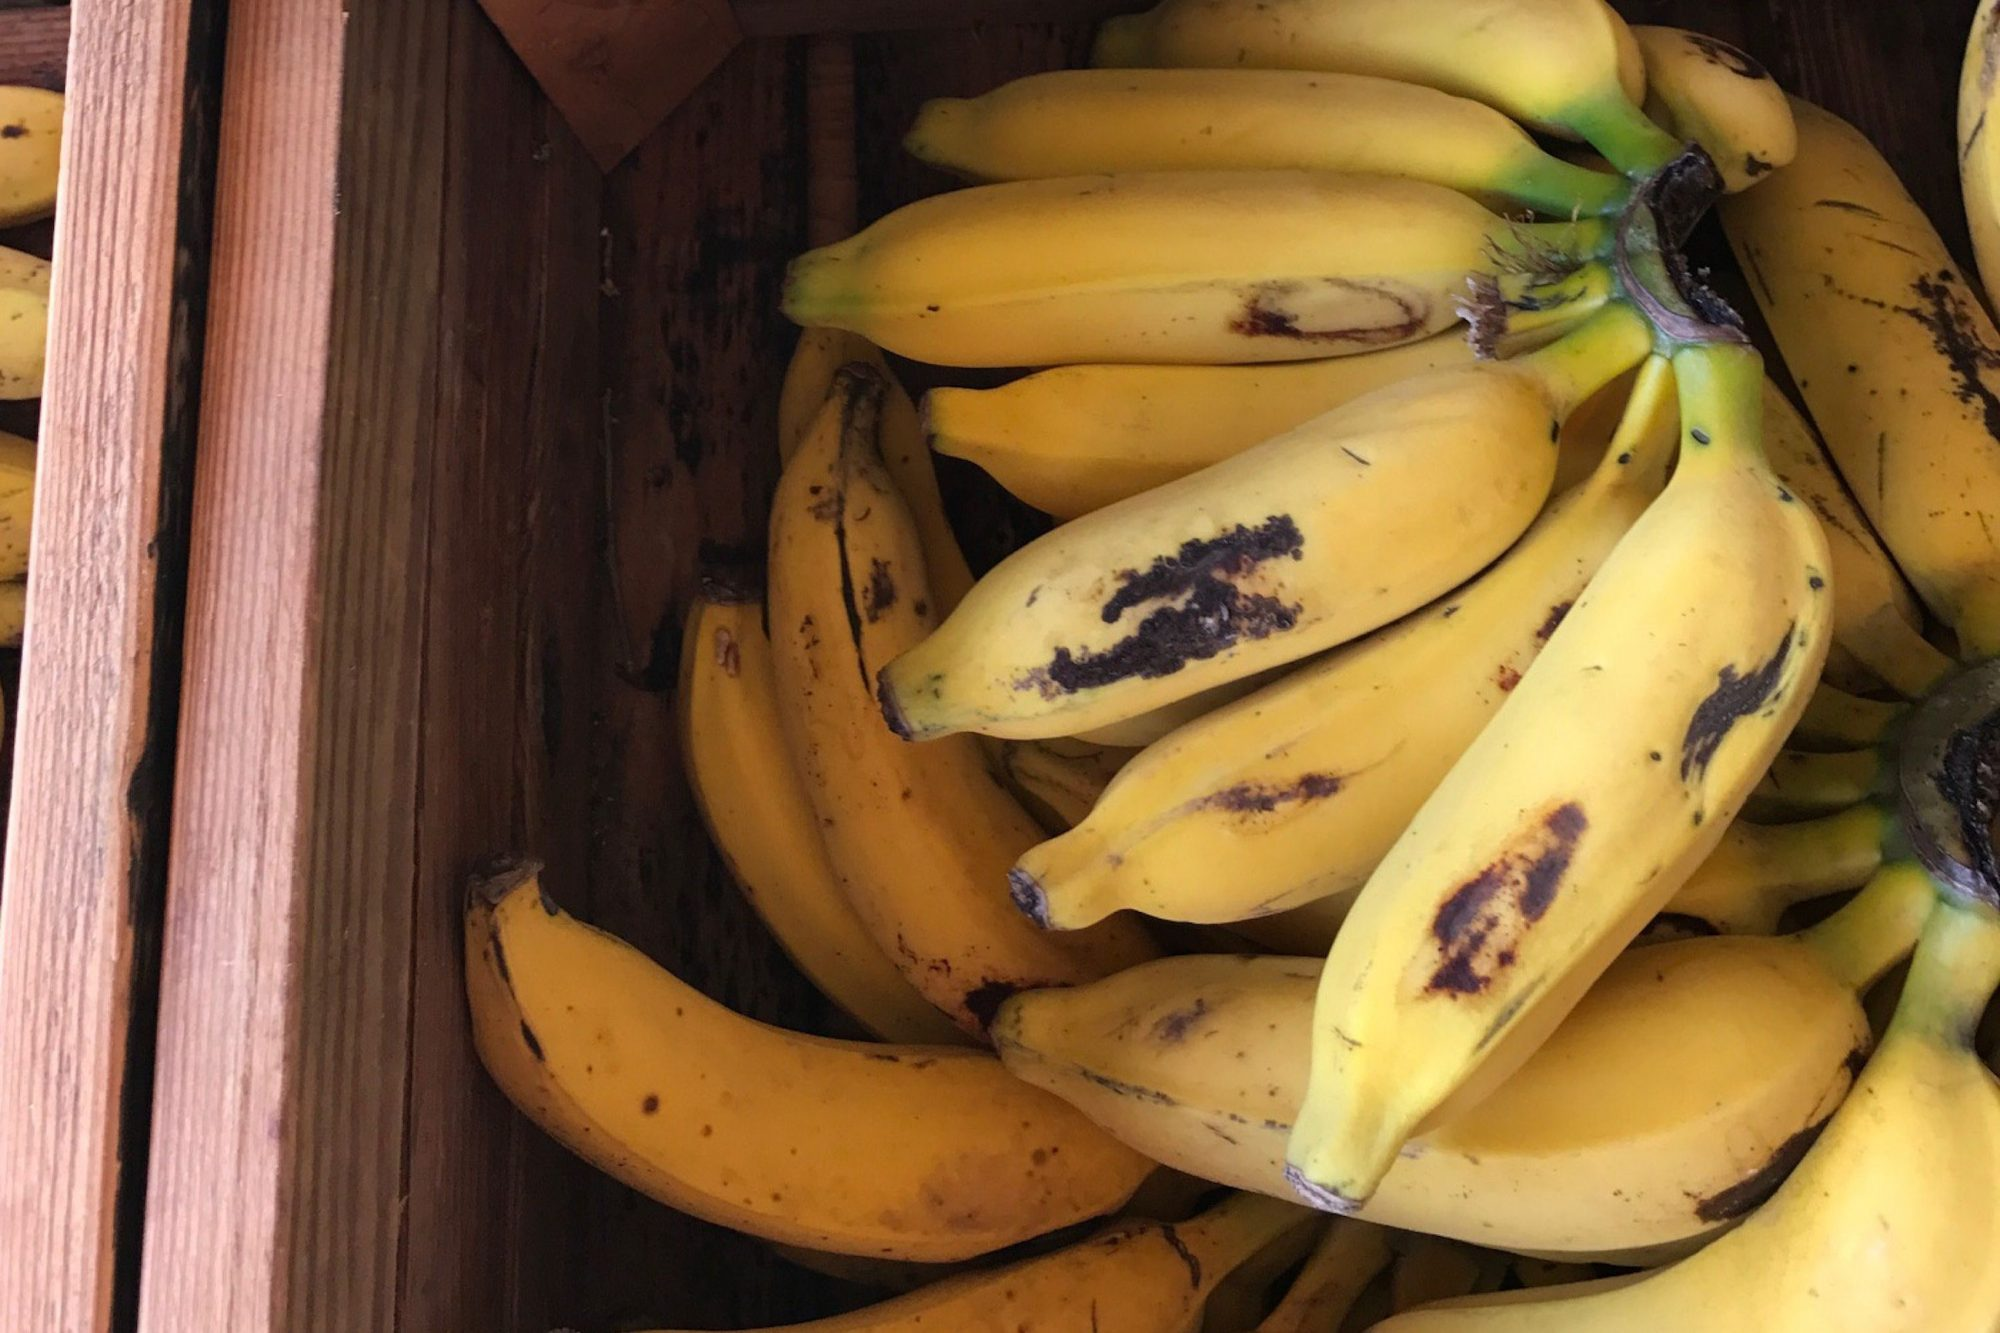 EC: Apple Bananas Will Change the Way You Think About Bananas